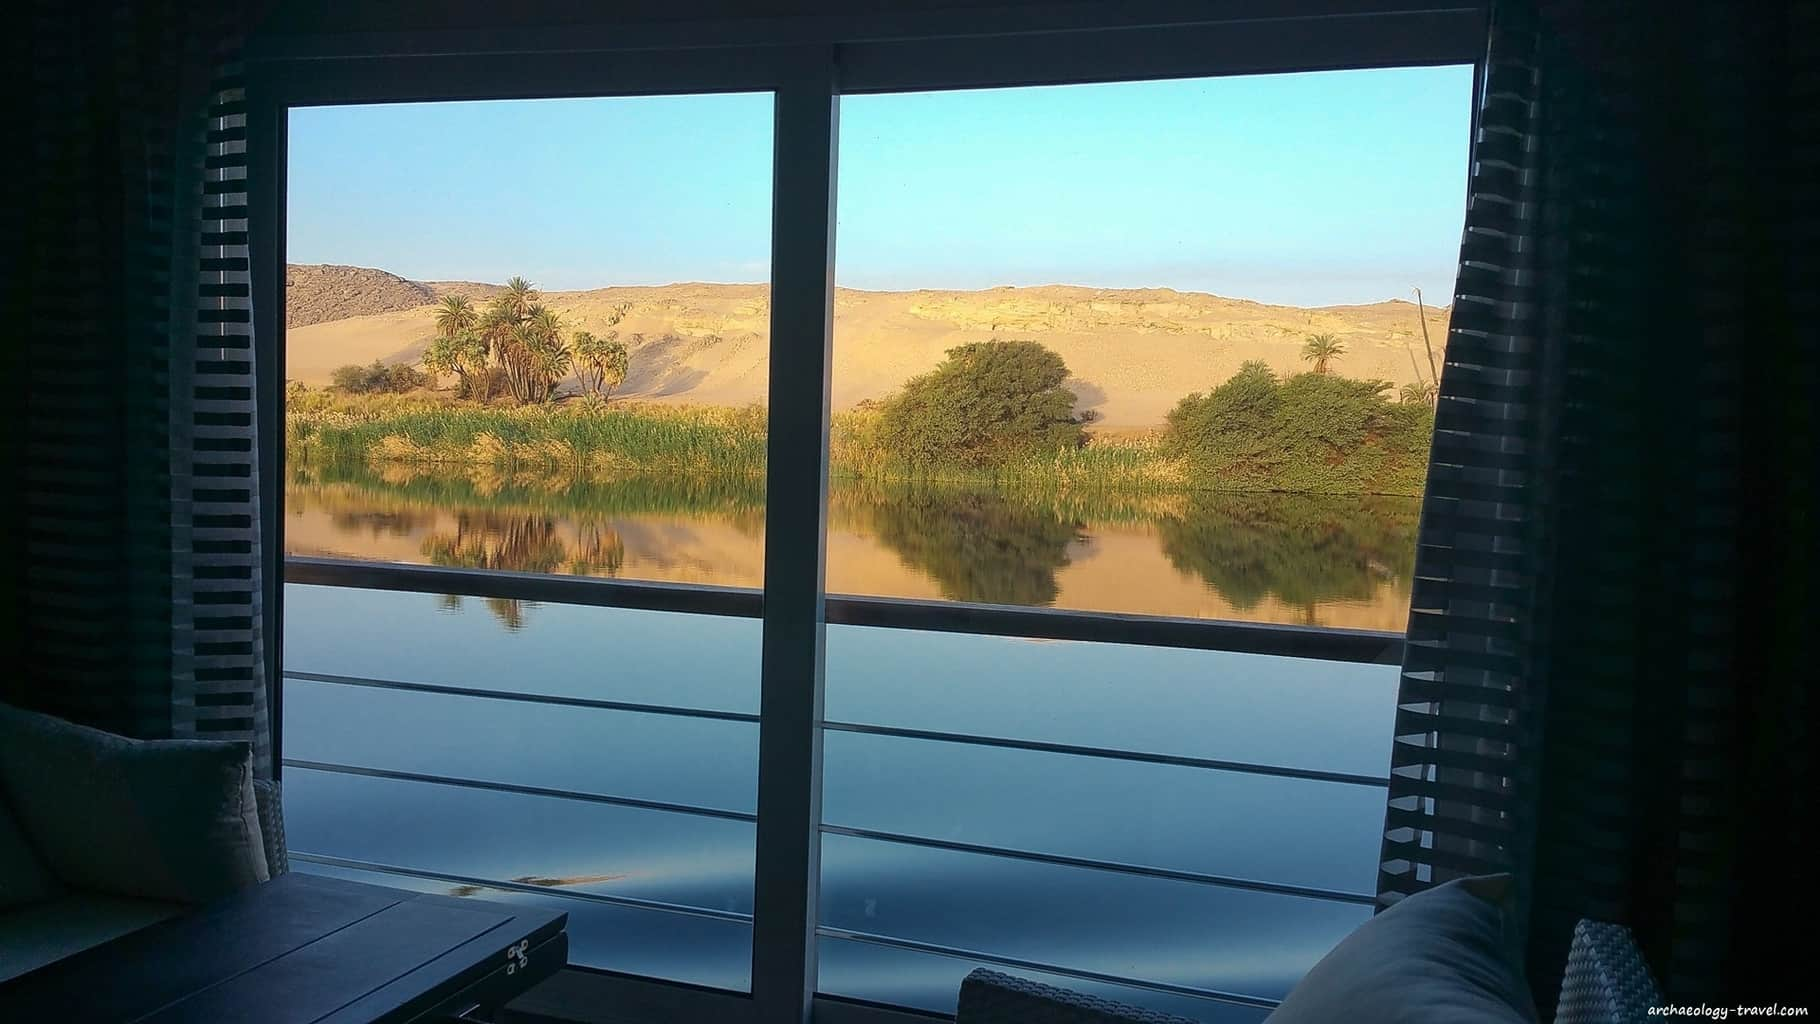 A dawn view from my suite on the Oberoi Philae luxury Nile cruise ship.